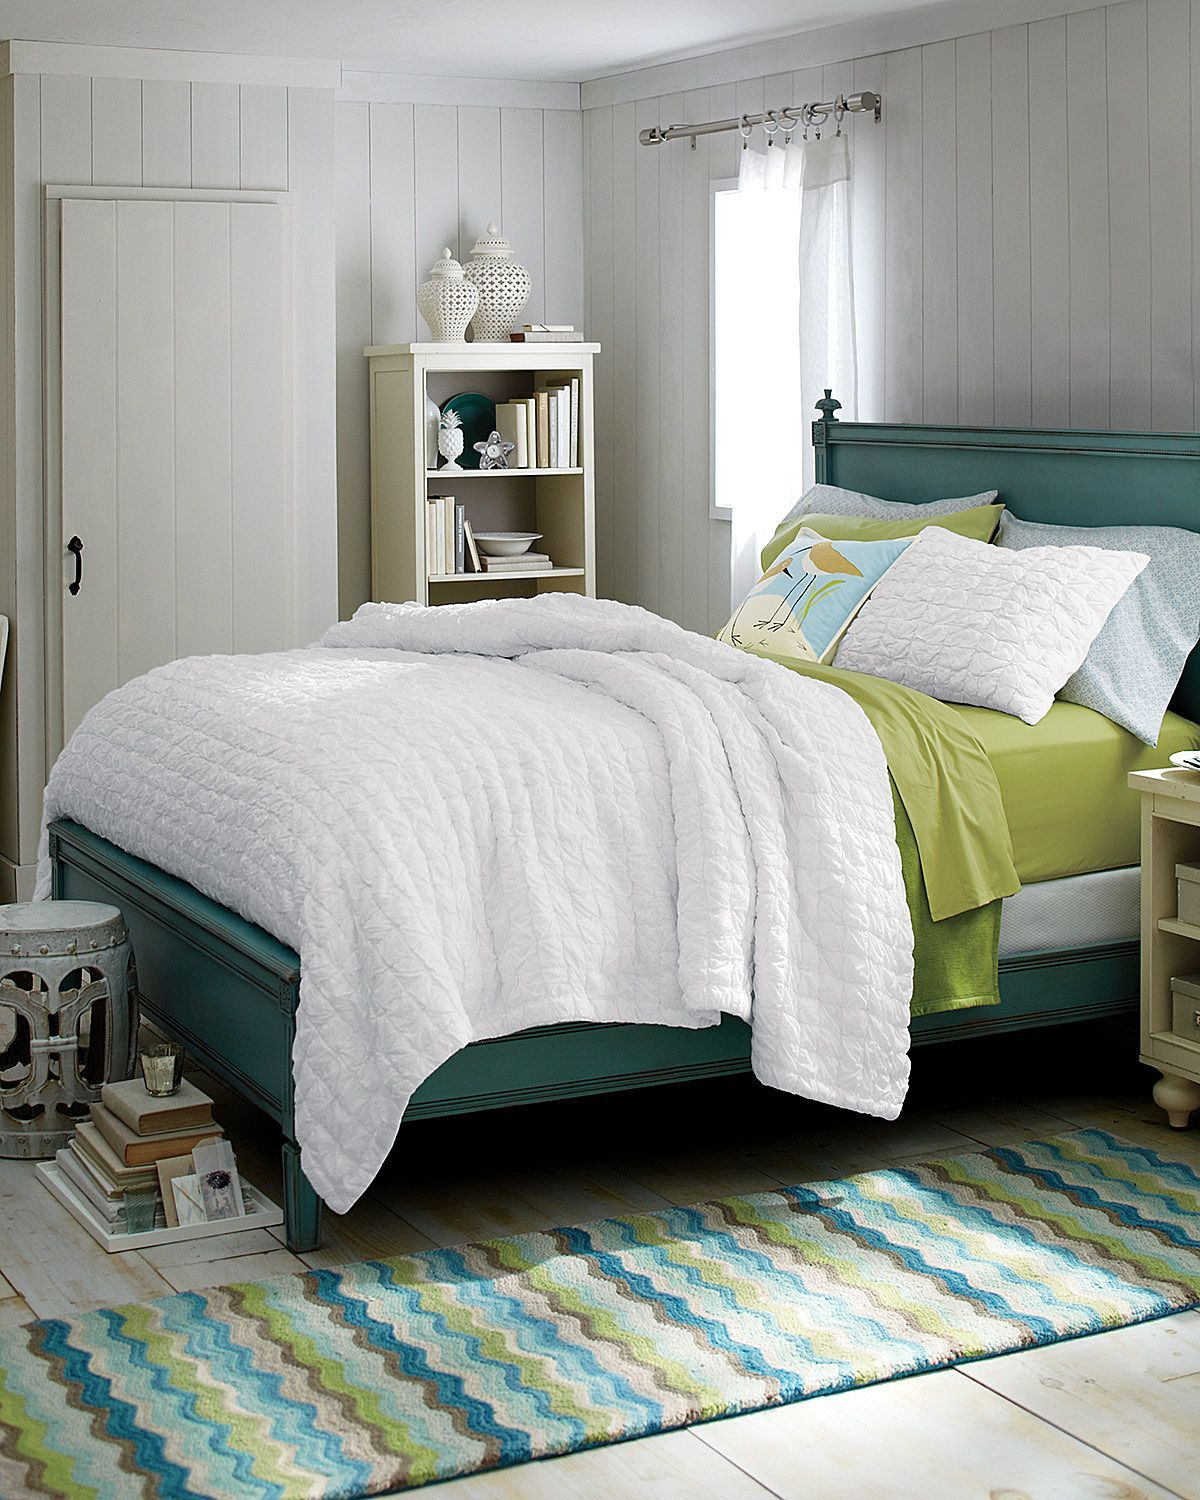 Hill Breezy Voile Quilt I love the rug, the white